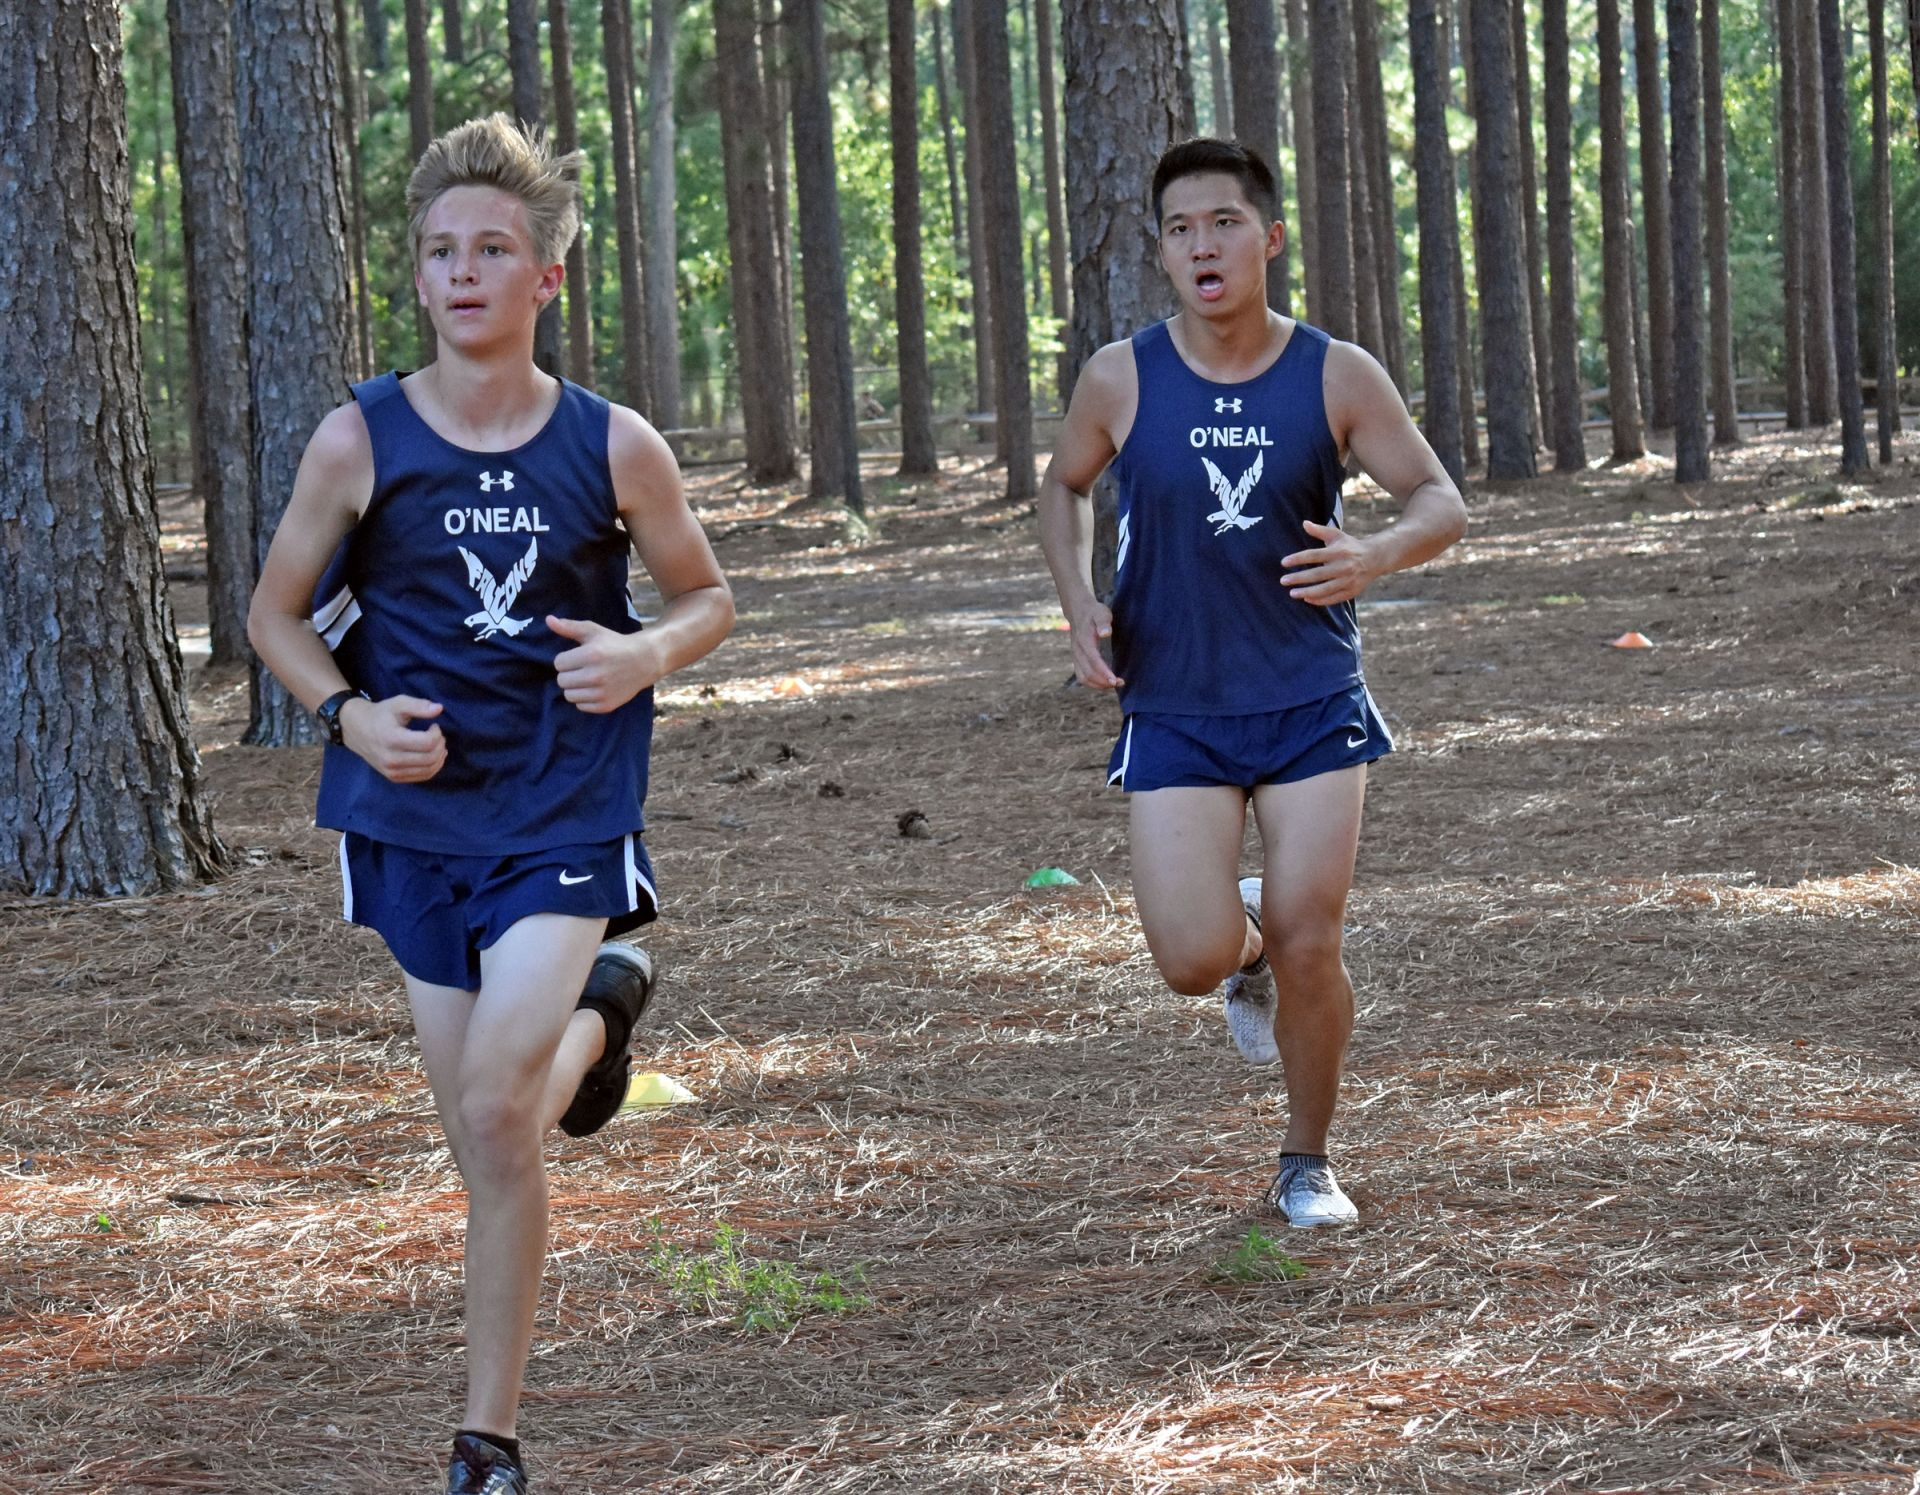 Middle School and High School students compete on the cross country team.